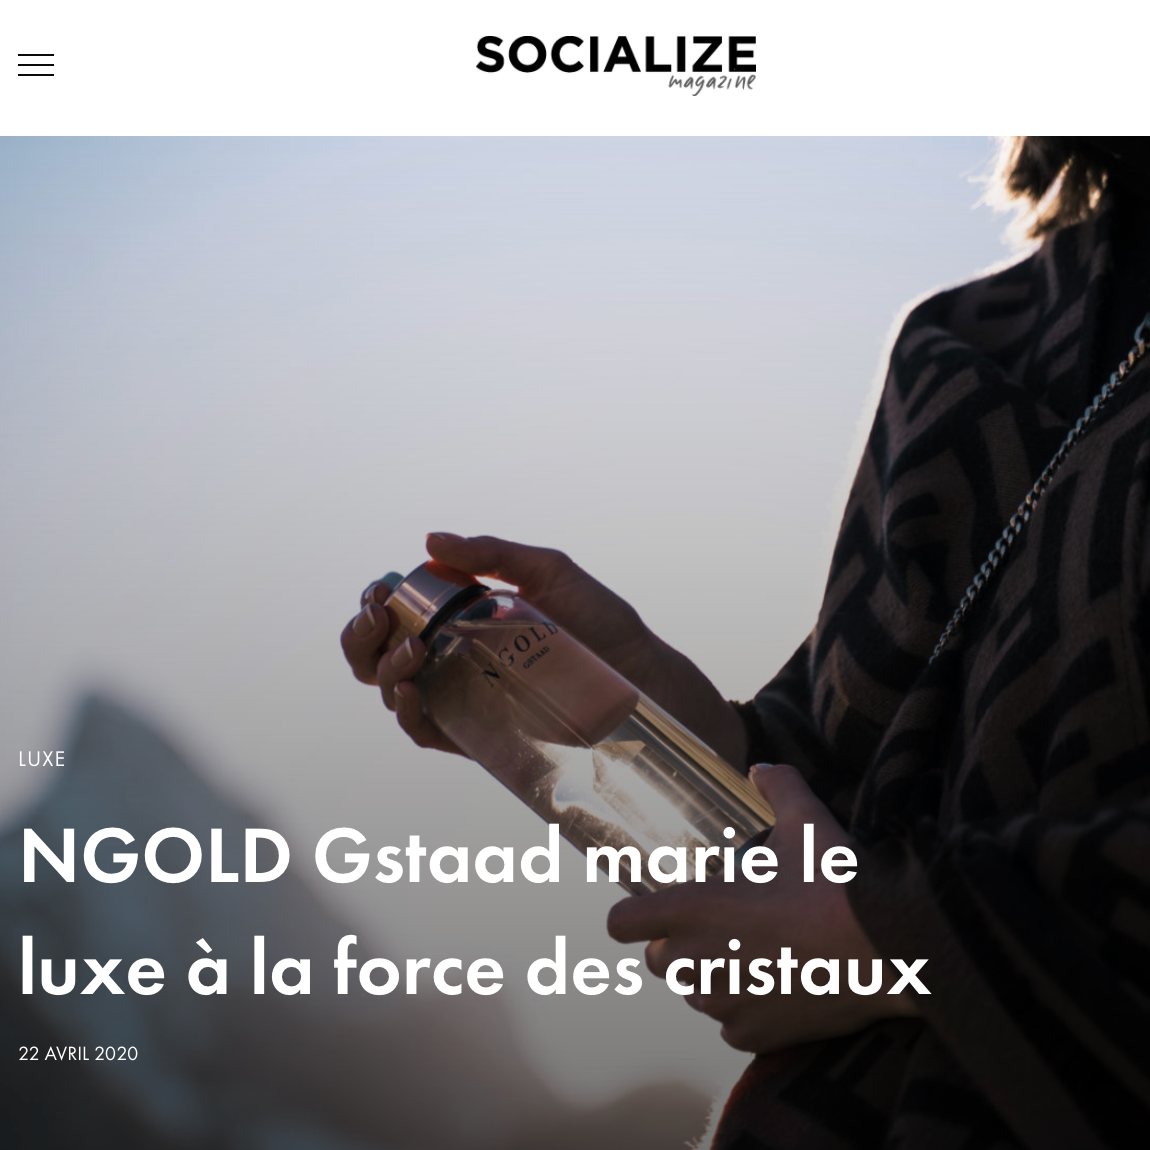 04-2020 - SOCIALIZE Magazine x NGOLD Gstaad